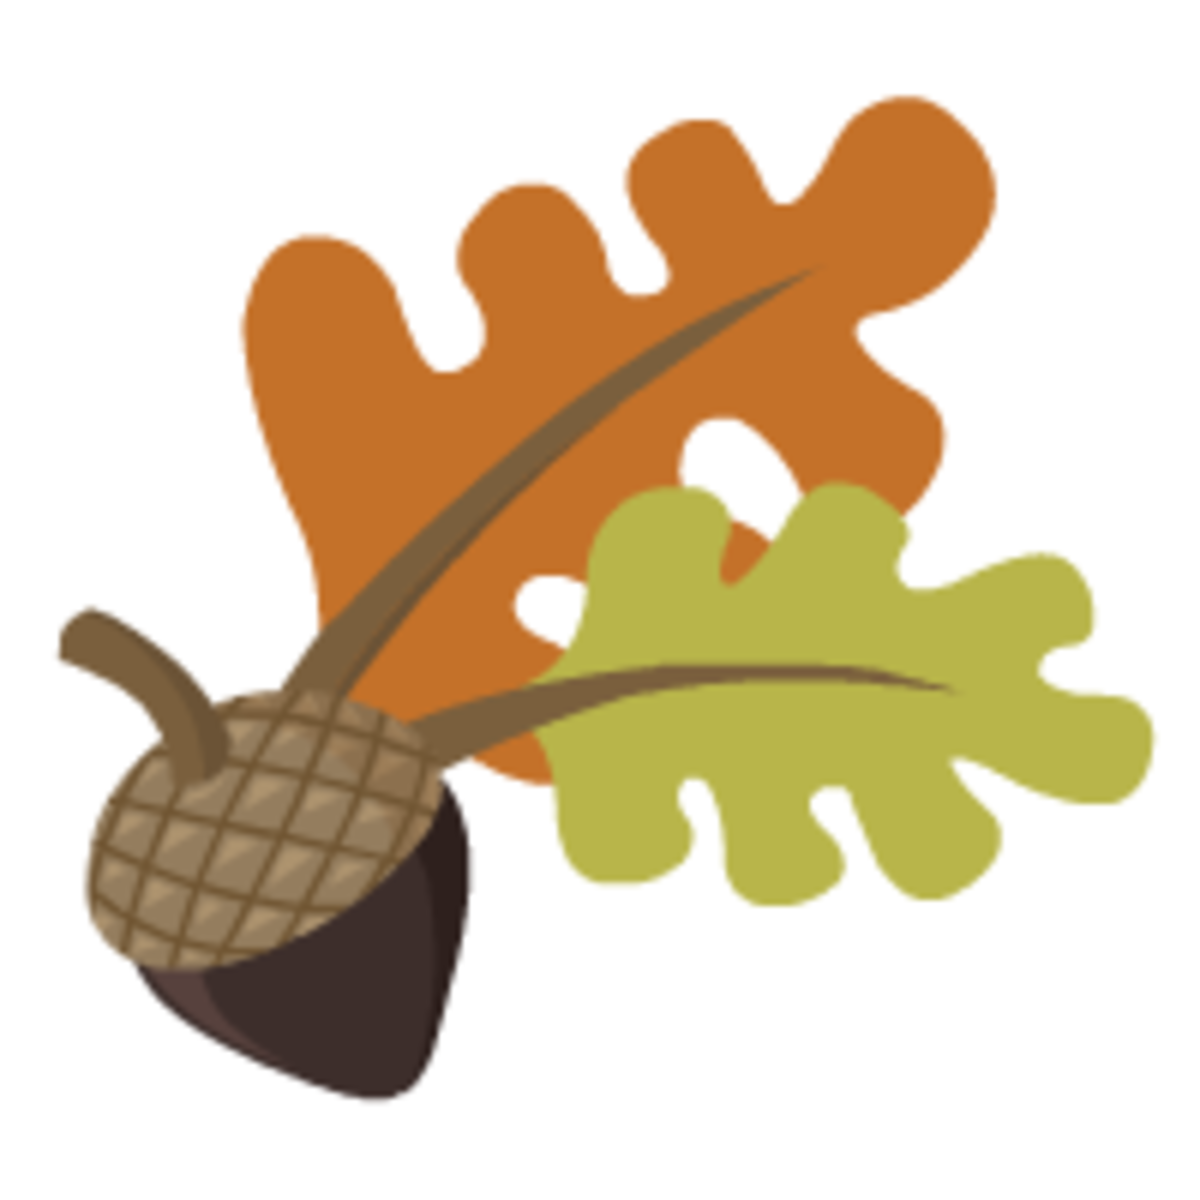 acorn with two large oak leaves clip art